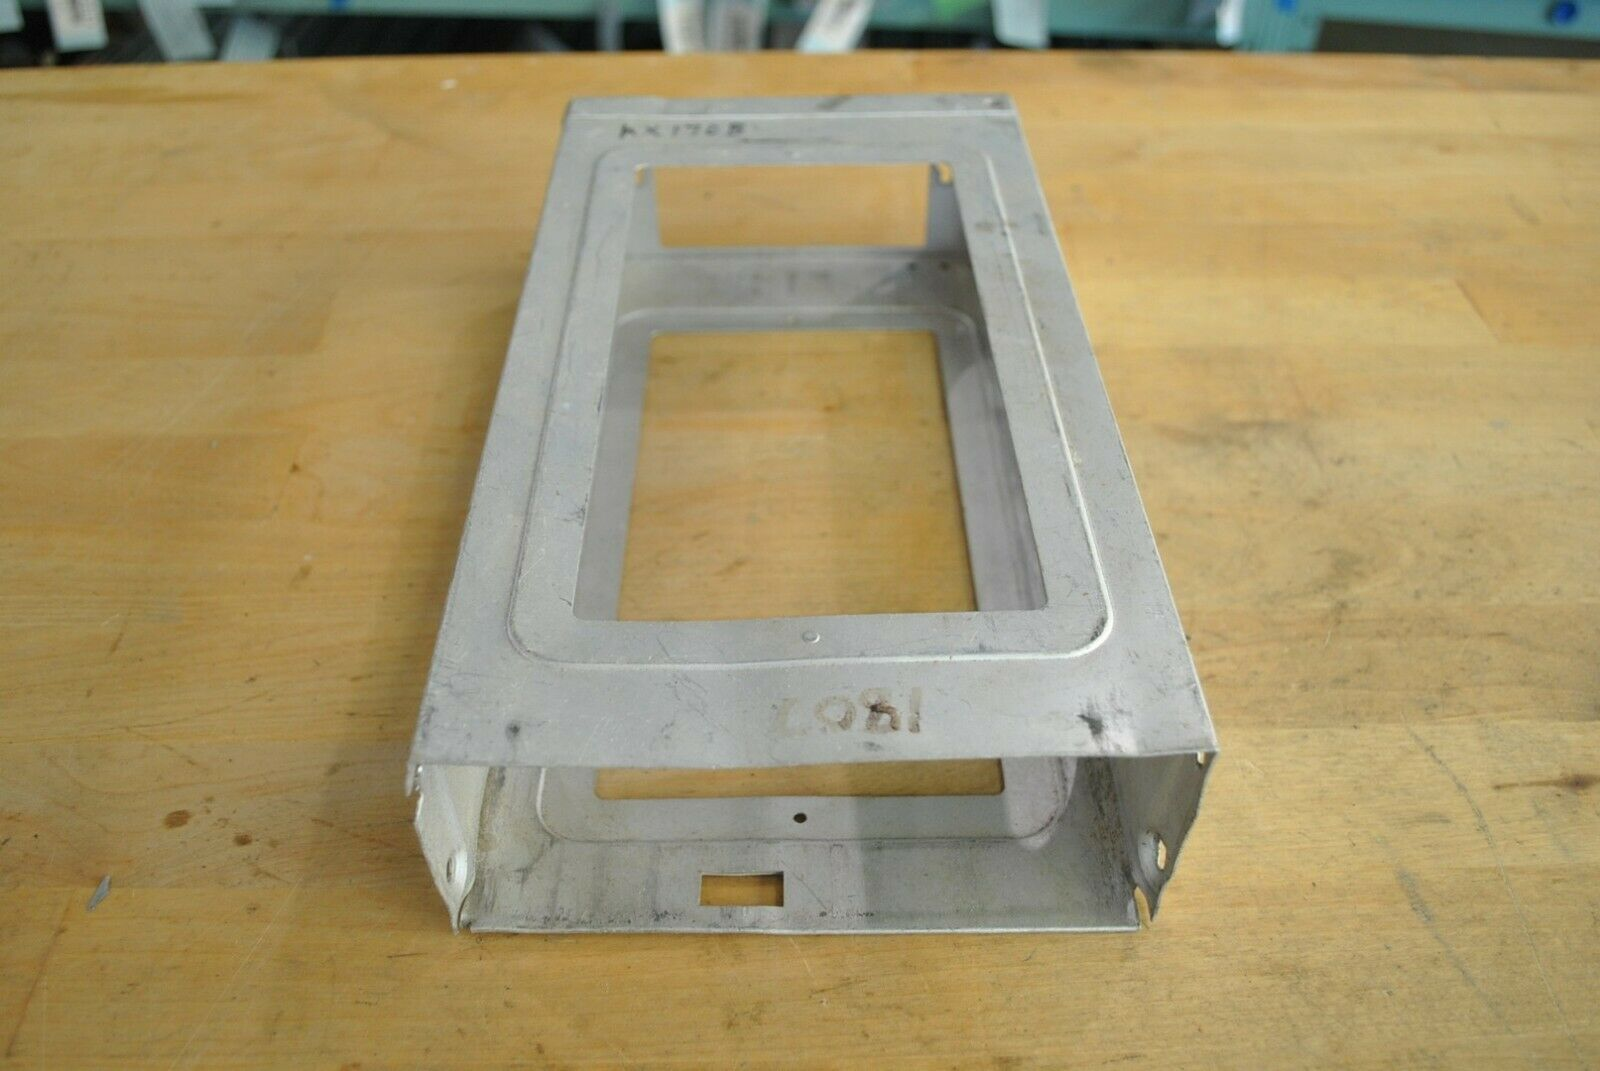 Bendix King KX170B KX175B Nav/Comm Mounting Tray Installation Rack